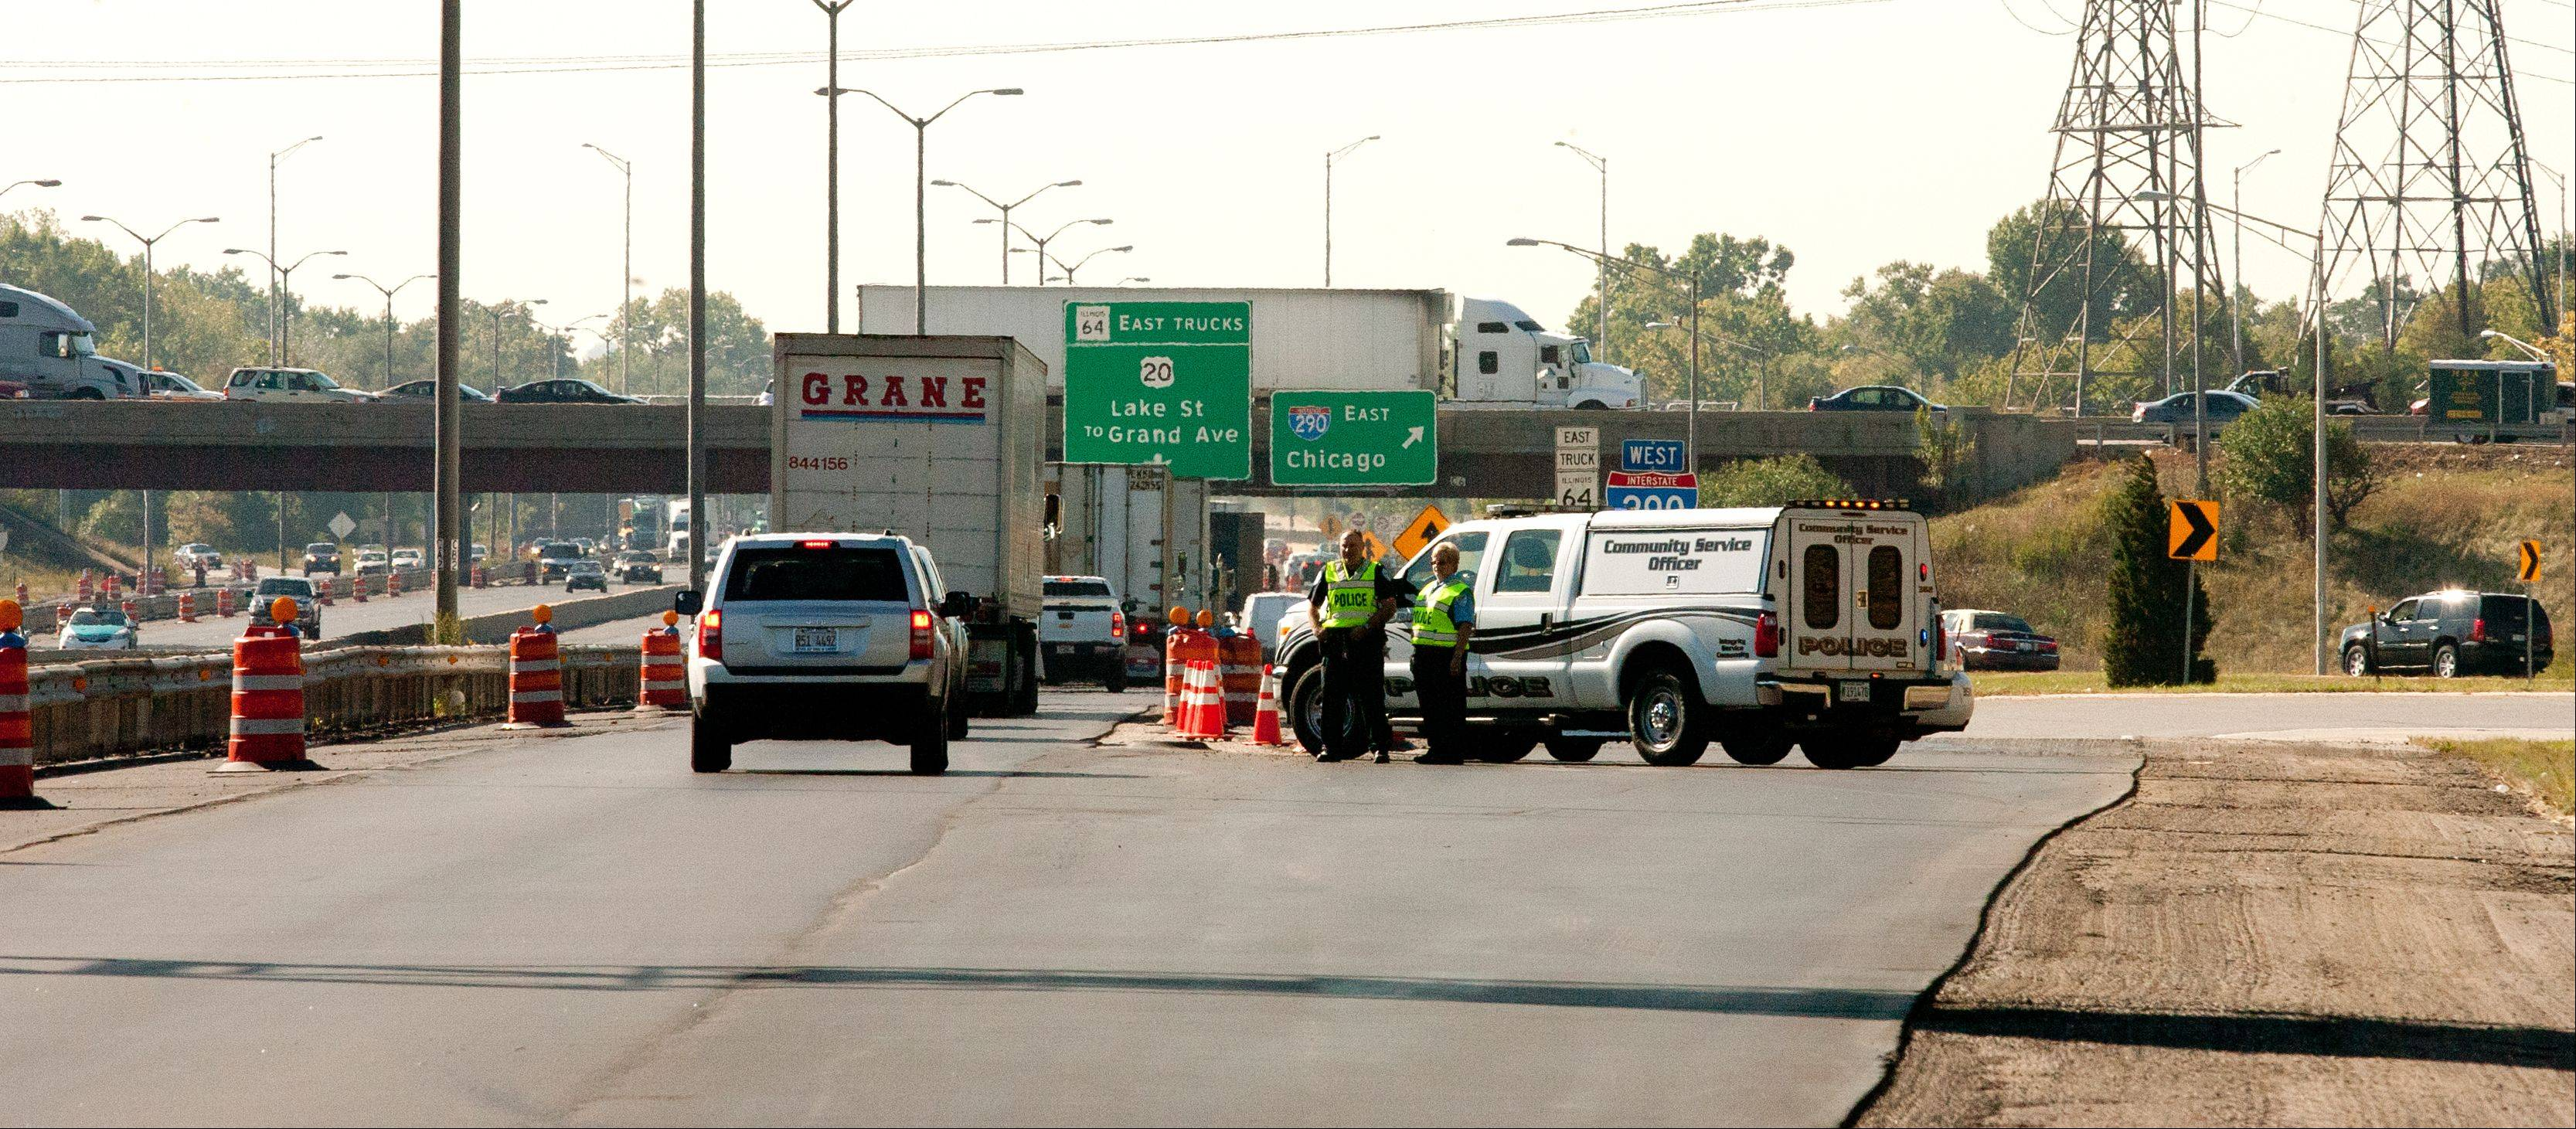 Traffic is diverted near the scene of a quadruple fatality Thursday along I-290 near Route 83 in Addison.